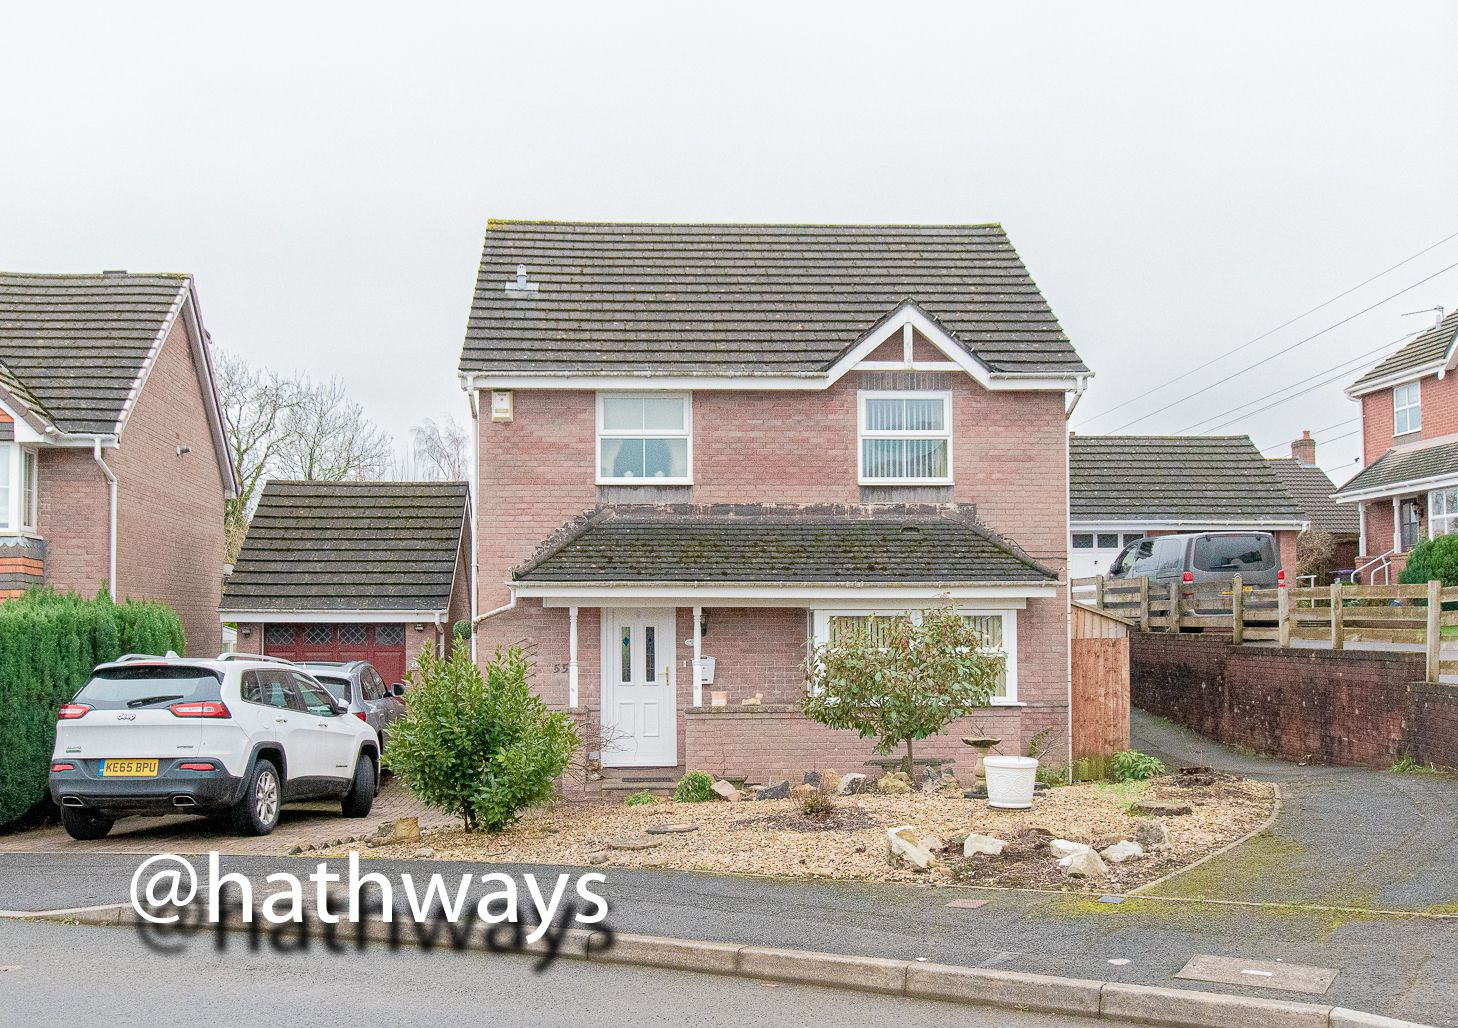 3 bed house for sale in Hawkes Ridge  - Property Image 2